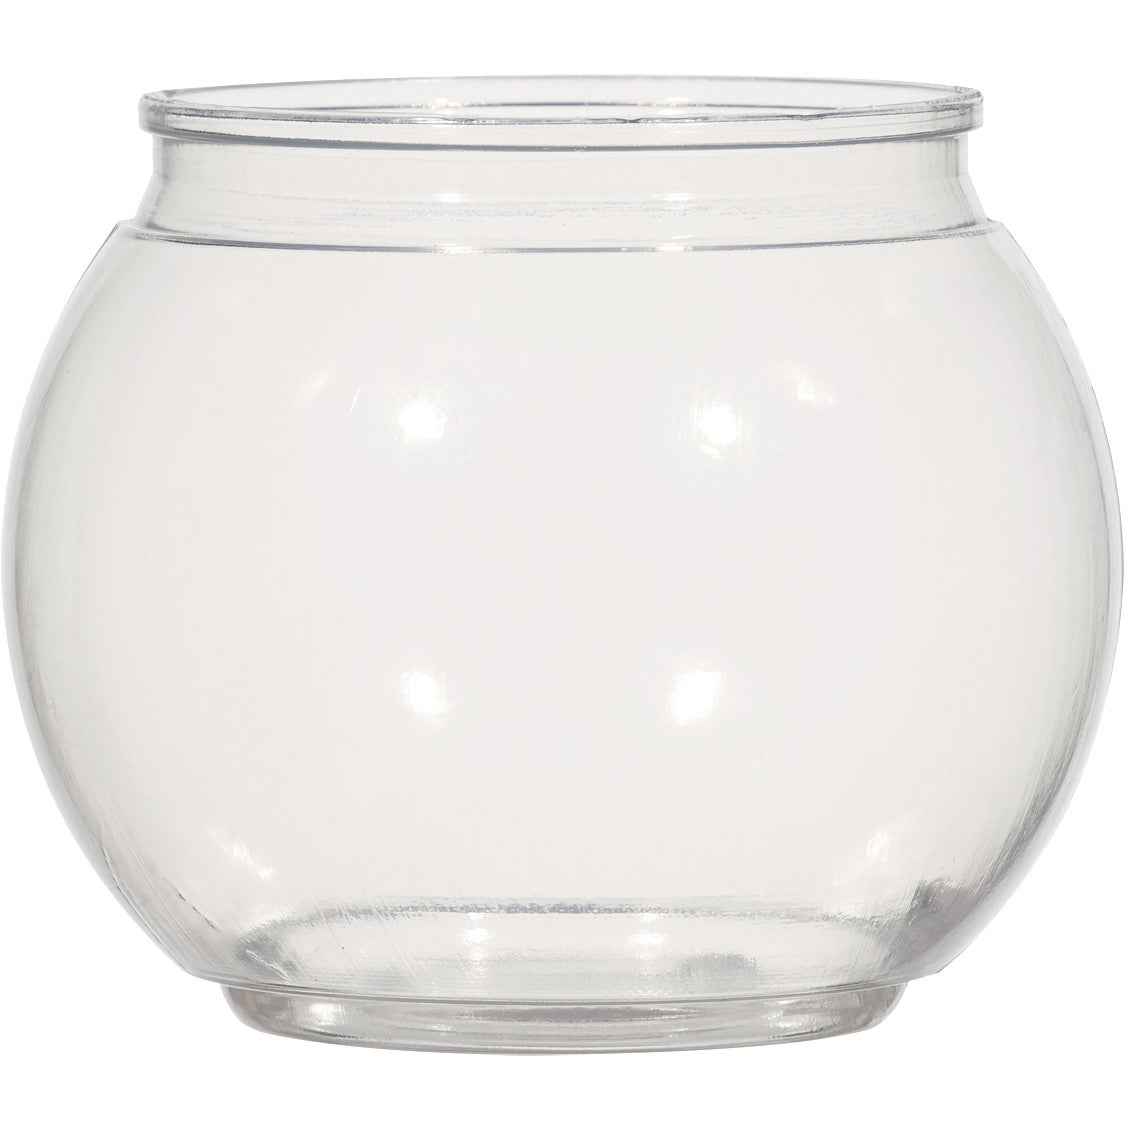 Fish bowl cup with straw 46 oz logo drinkware and barware for Fish bowl cups